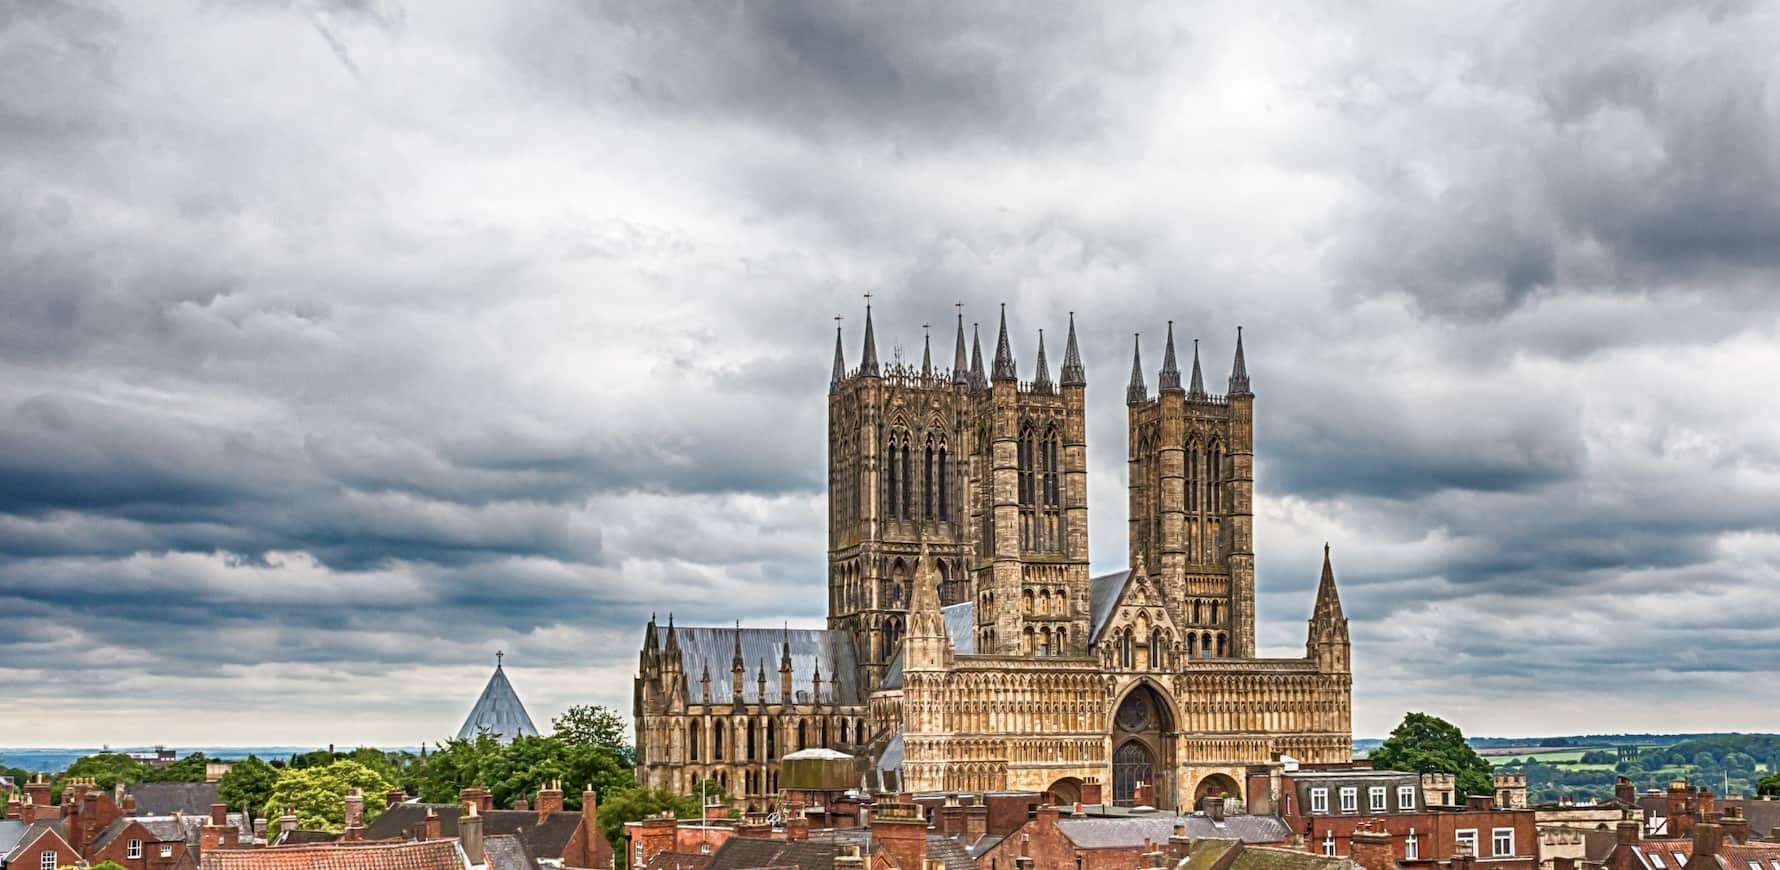 Lincoln Cathedral - Cathedrals at Night 30th May 2020